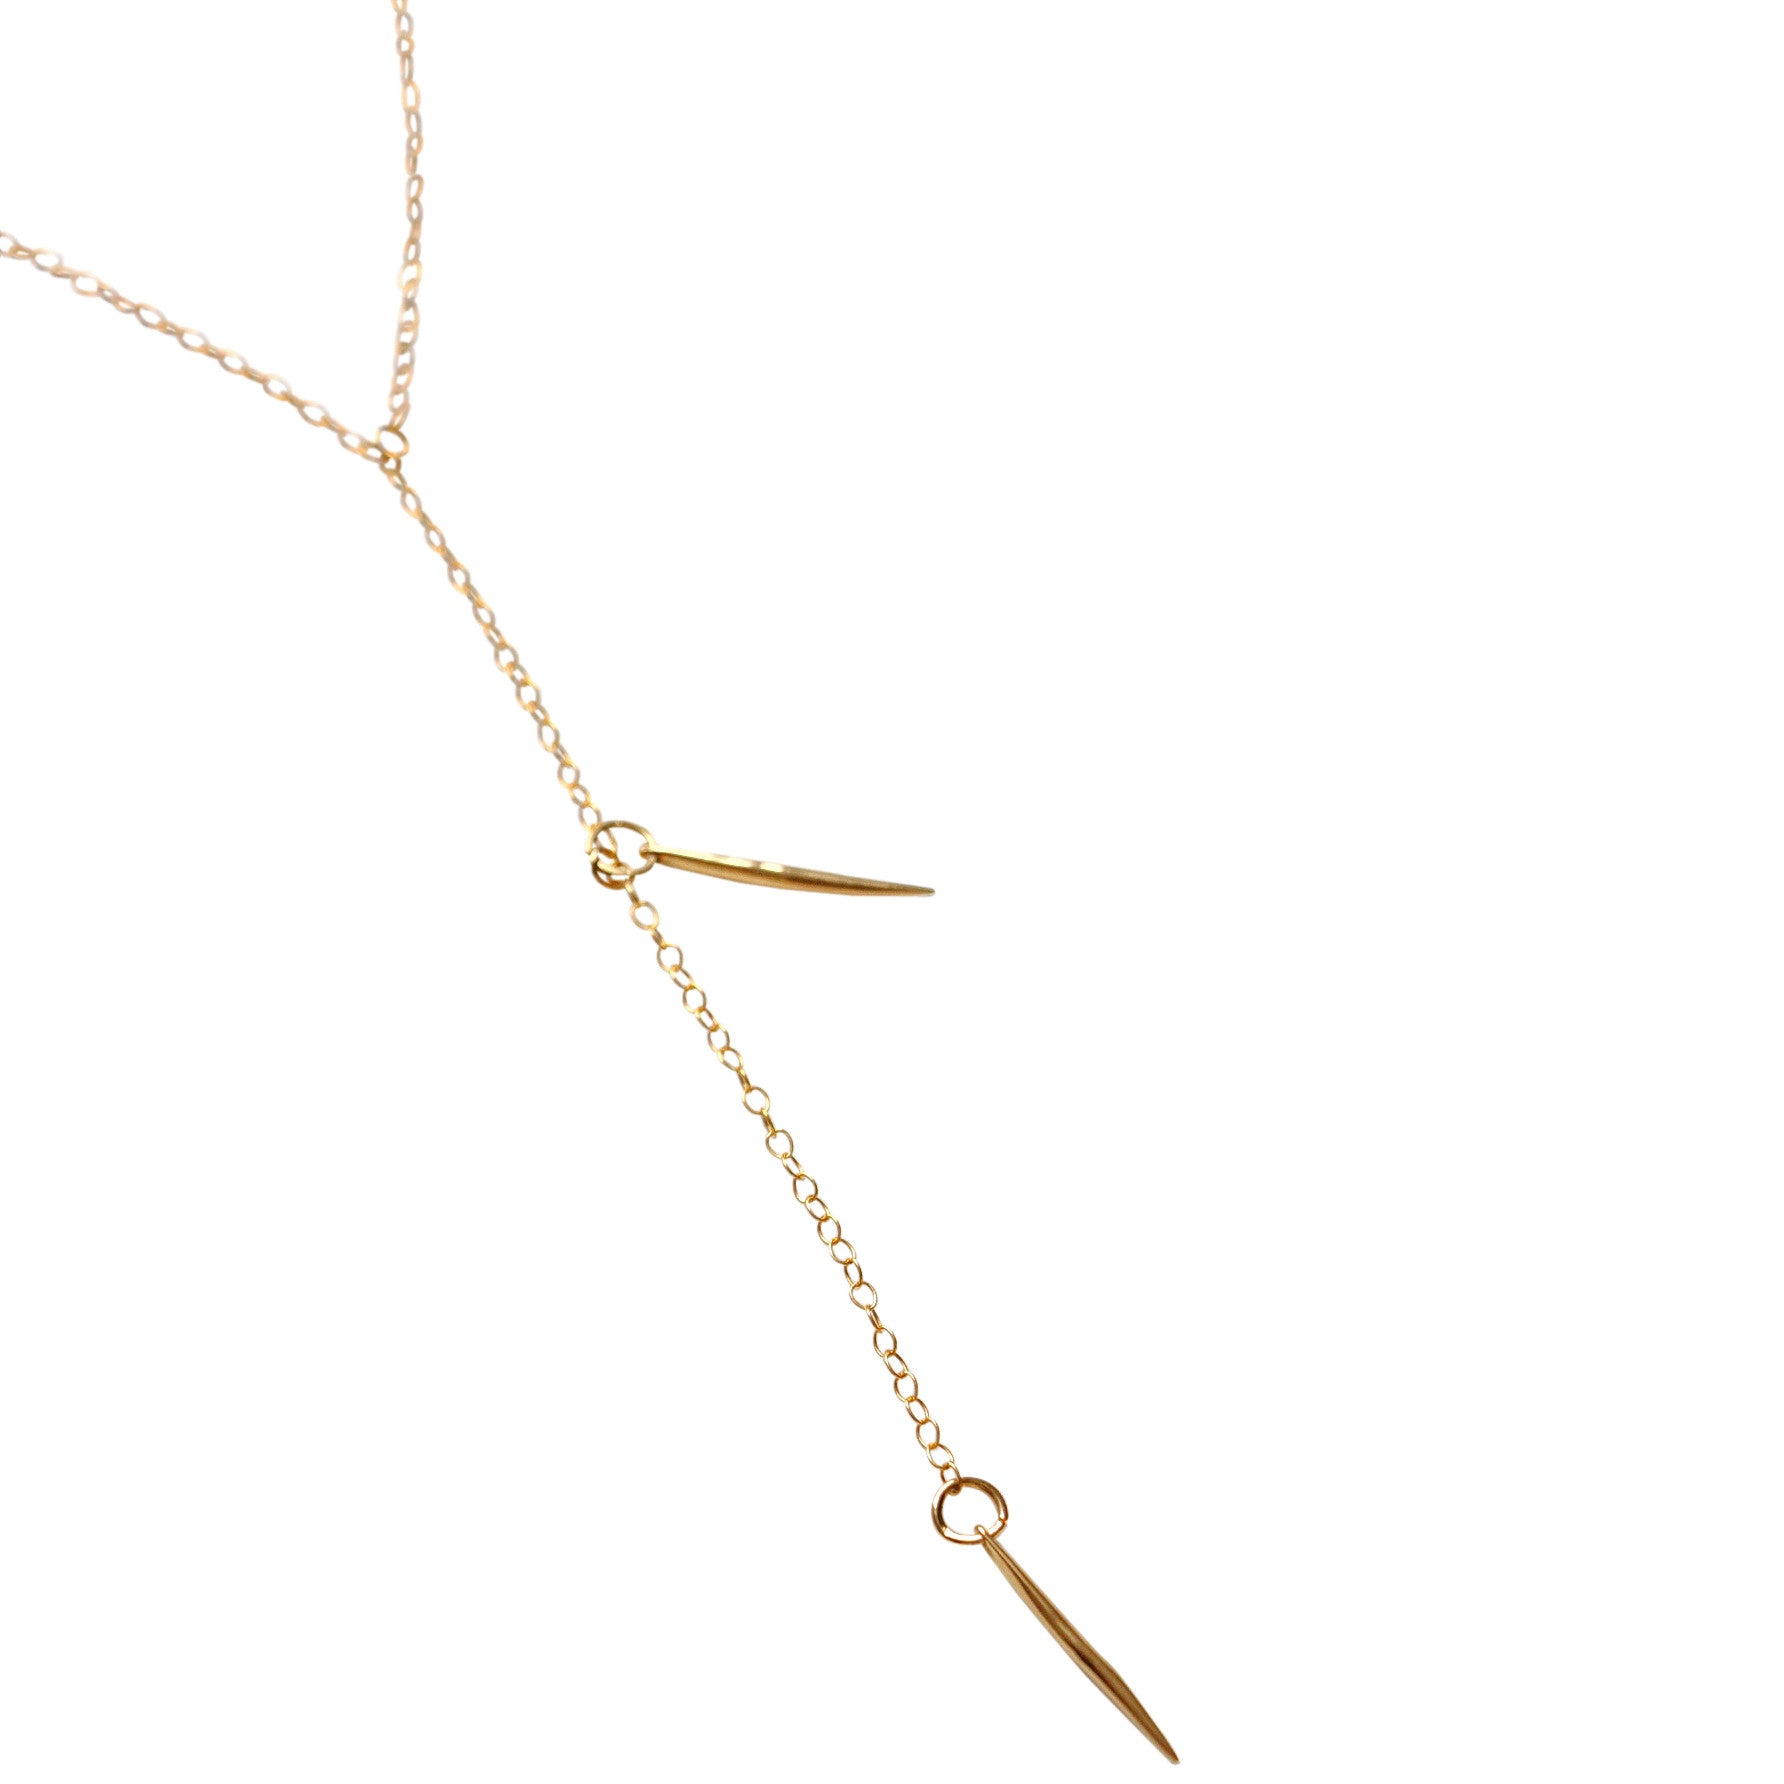 Lariat Necklace with two 18k Gold filled Spikes on 14k Gold Filled delicate chain